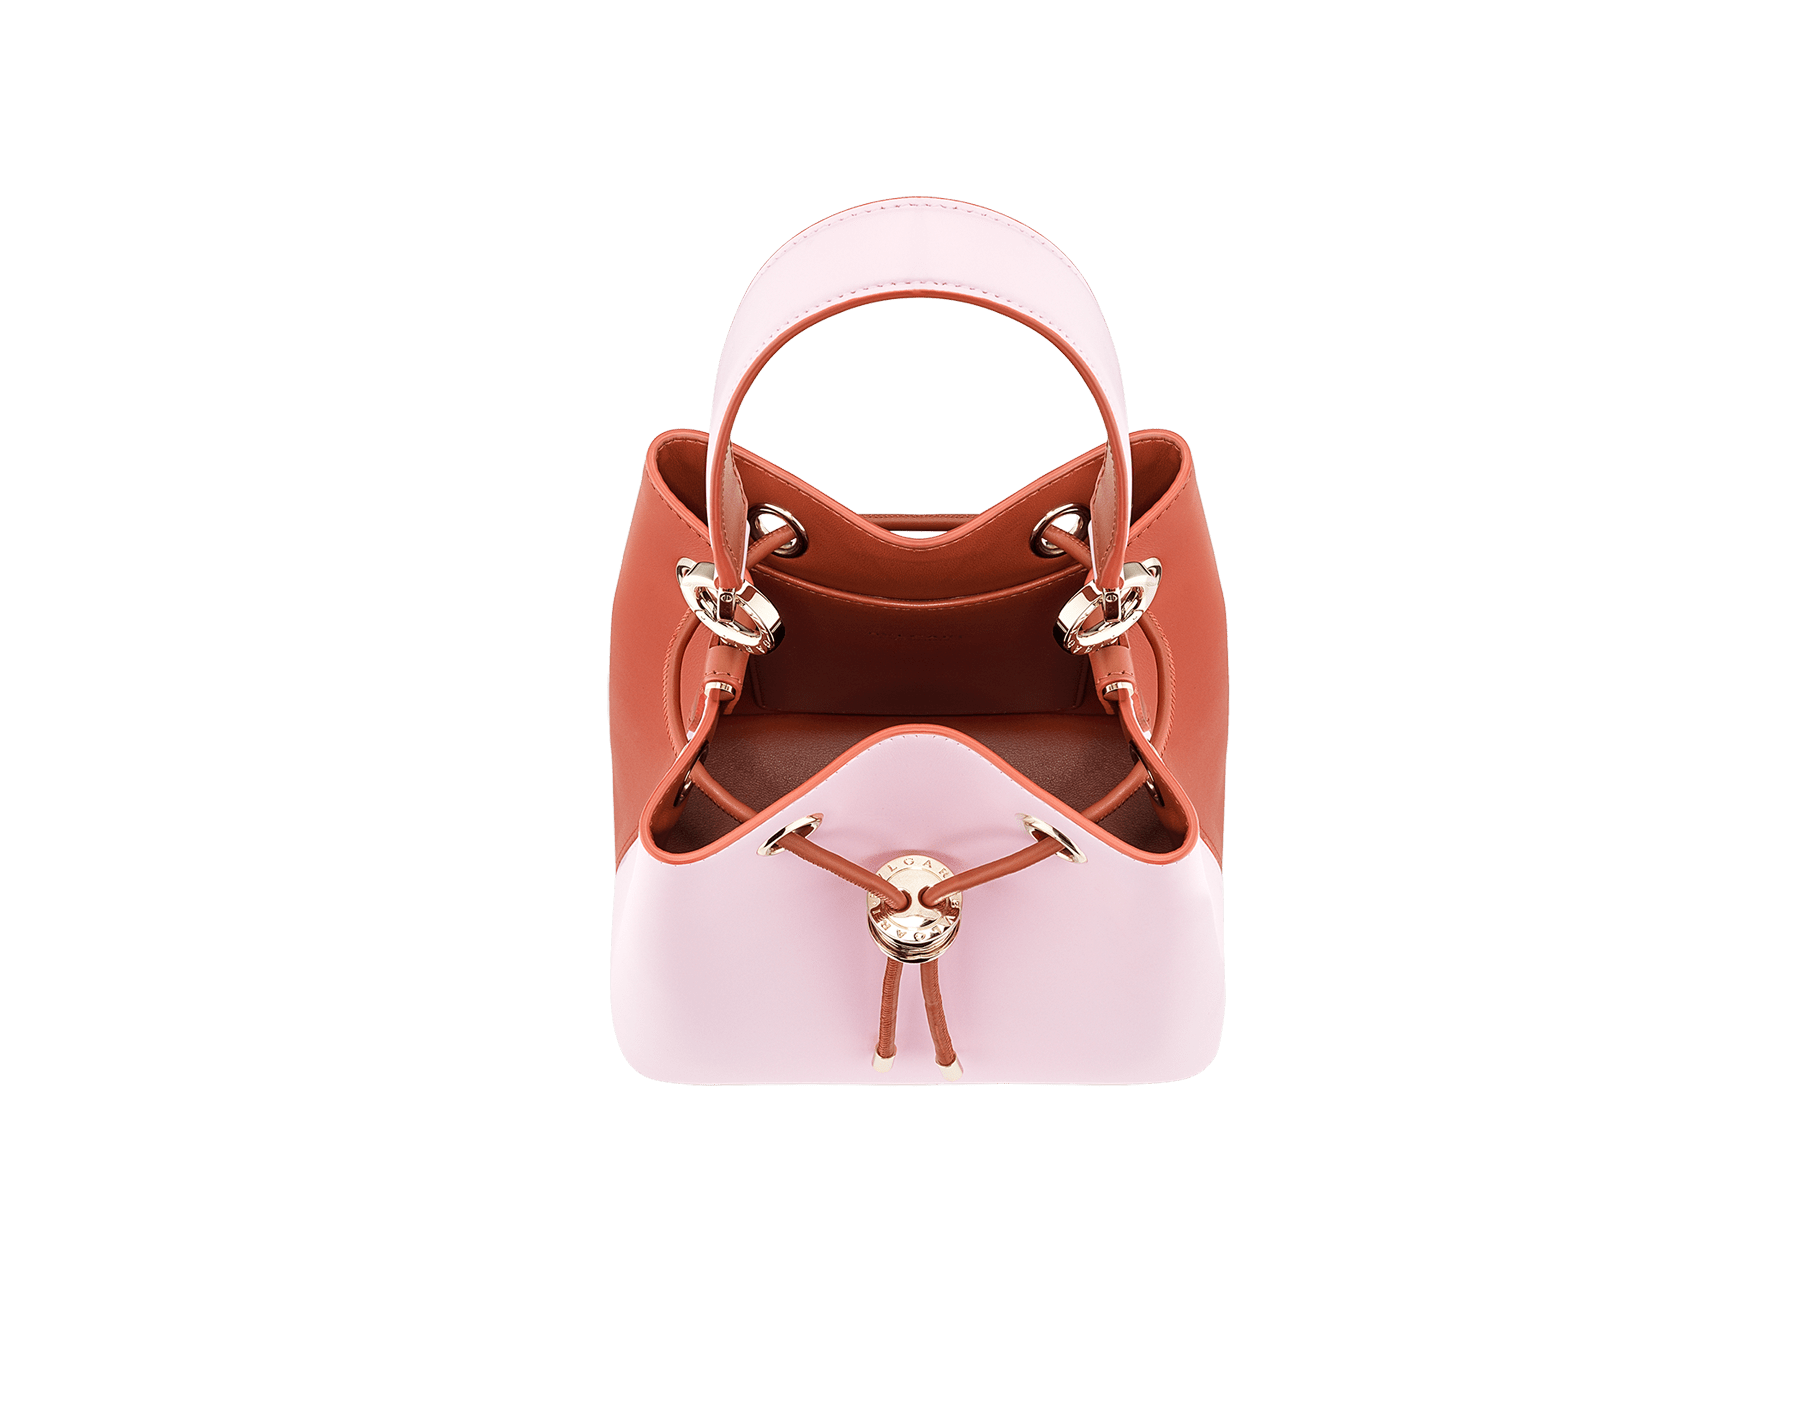 Bucket B.zero1 in rosa di francia and imperial topaz smooth calf leather and imperial topaz nappa inner lining. Hardware in light gold plated brass, featuring B.zero1 décor. 288951 image 4